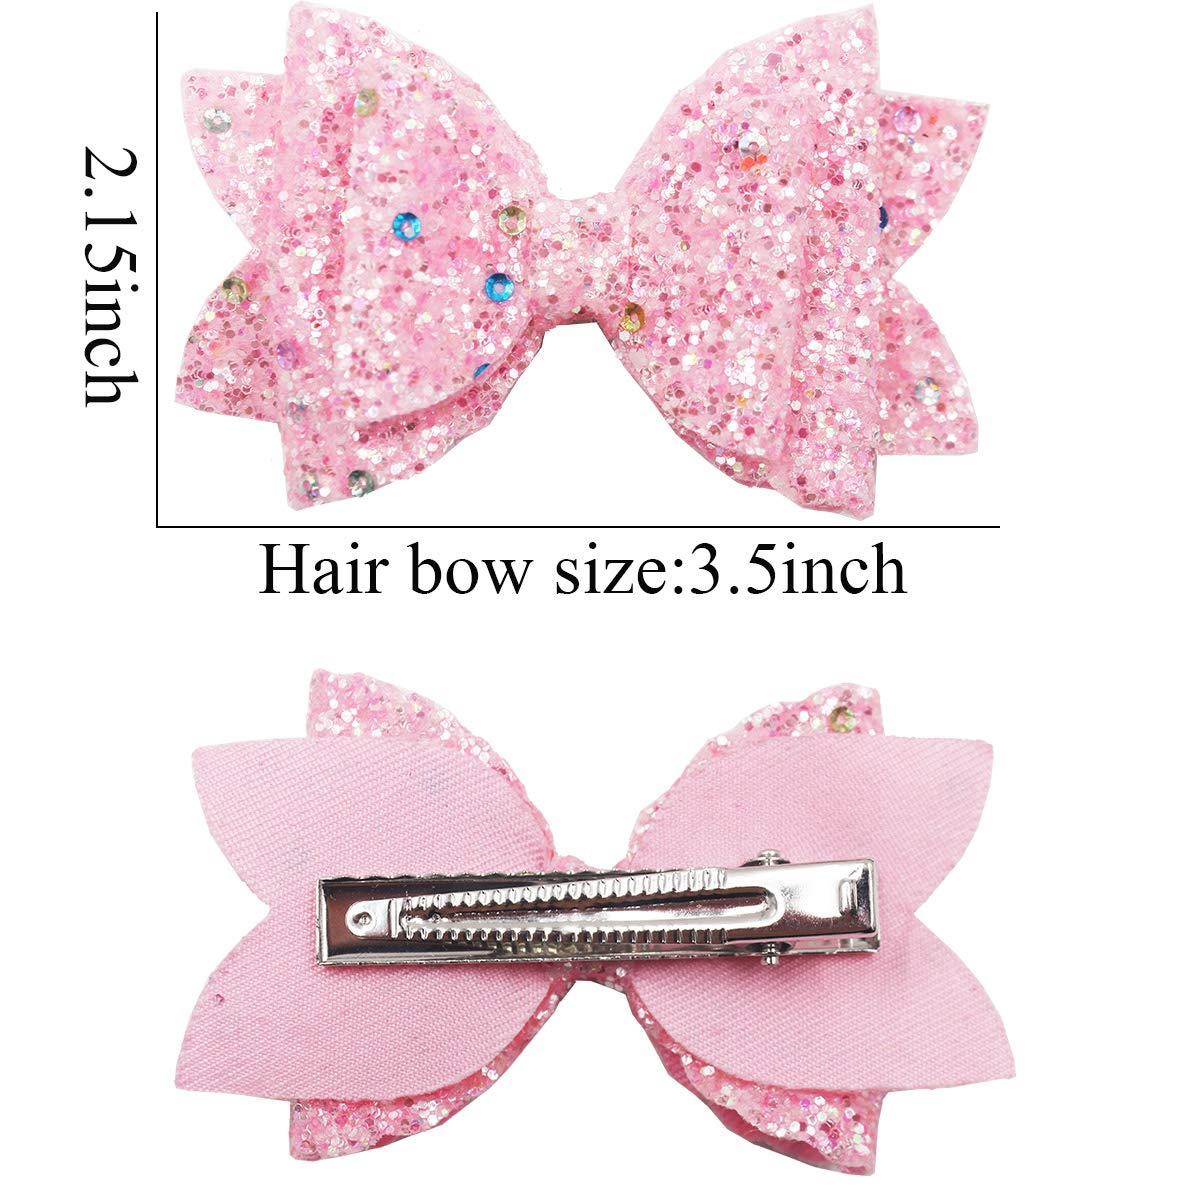 Faux Leather Pink Pretty In Pink Glitter Bow 3 inch Bow Glitter 3.5 inch Bow